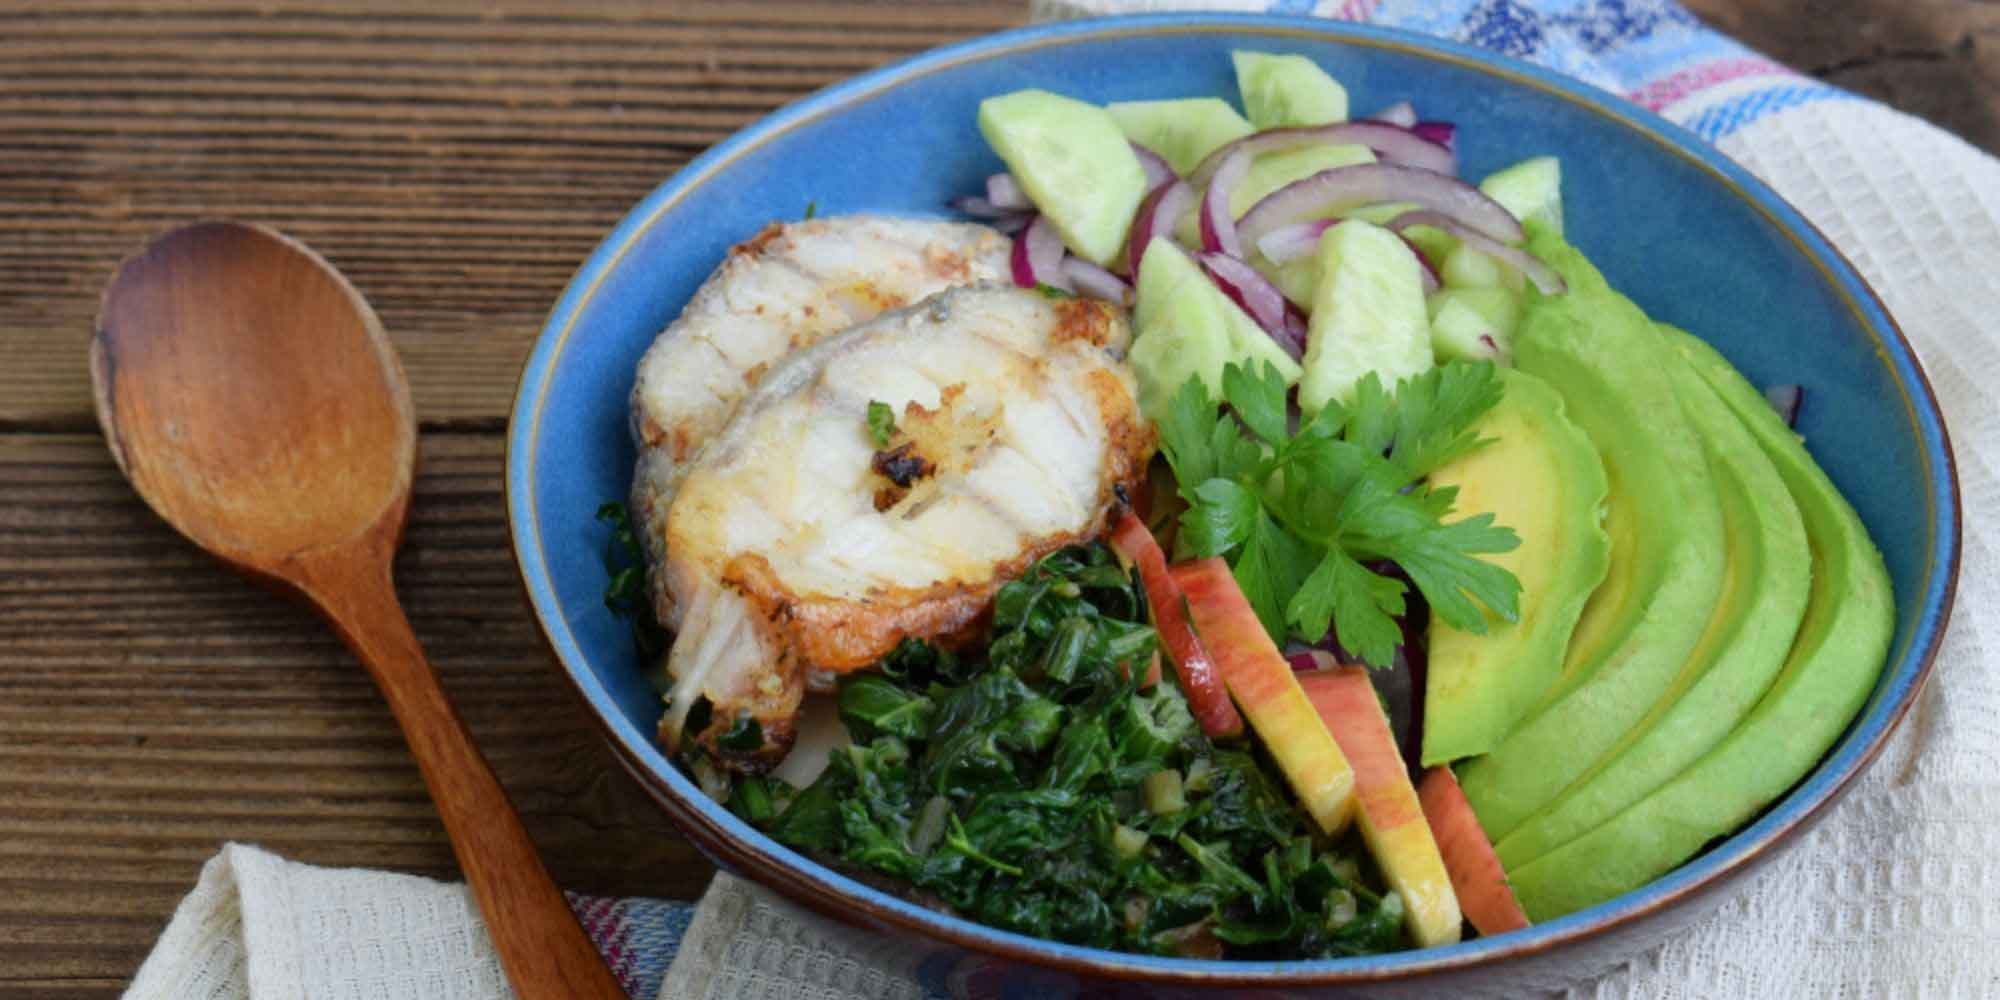 Wooden spoon, blue plate holding AIP Diet meal of grilled chicken, kale, cucumbers, apples, avocado, red onion, and parsley.